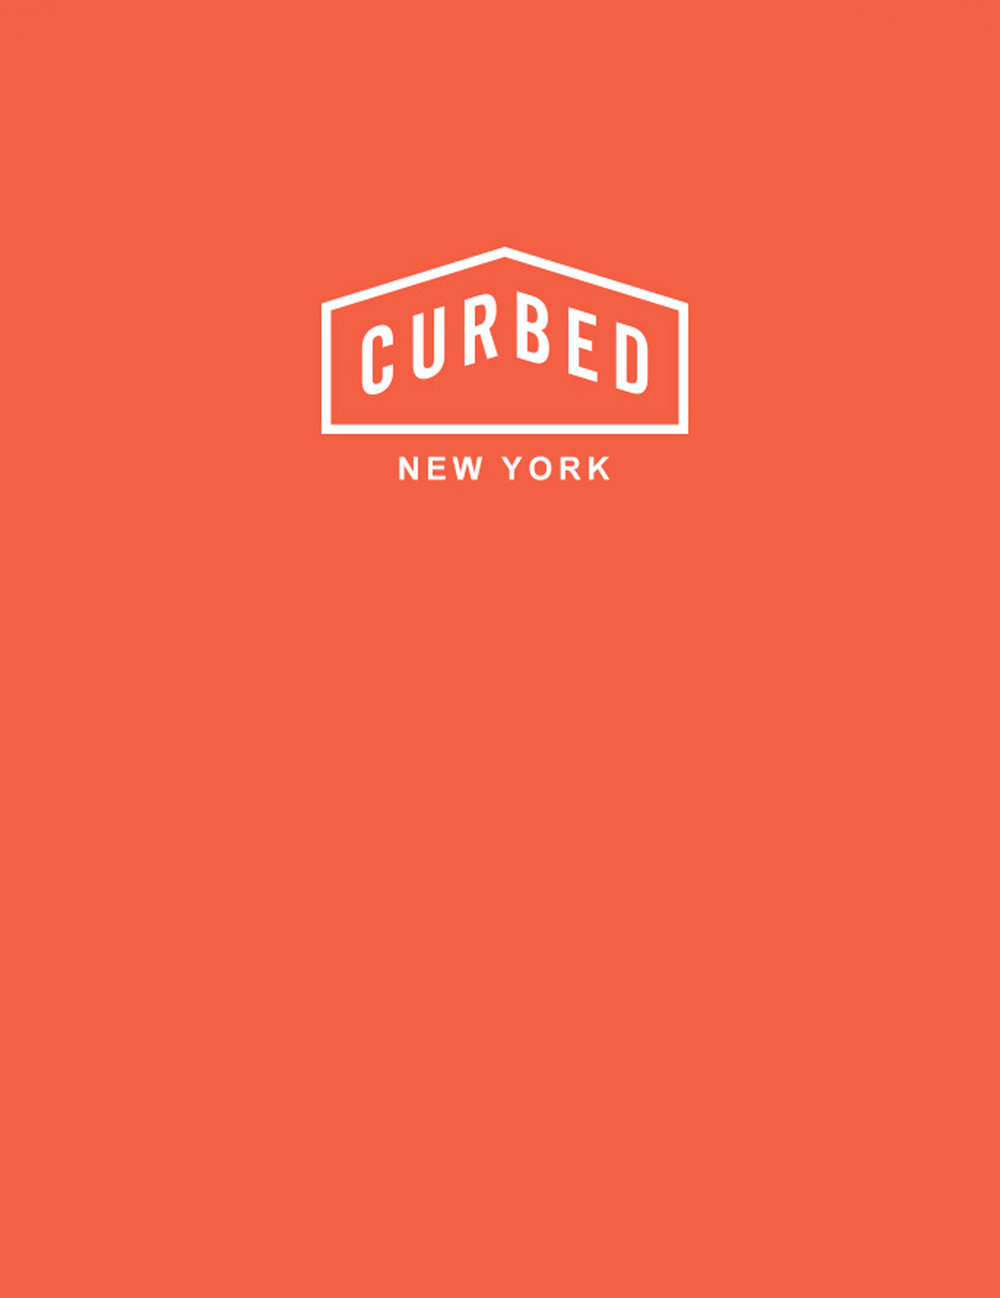 0626-Curbed-cover.jpg